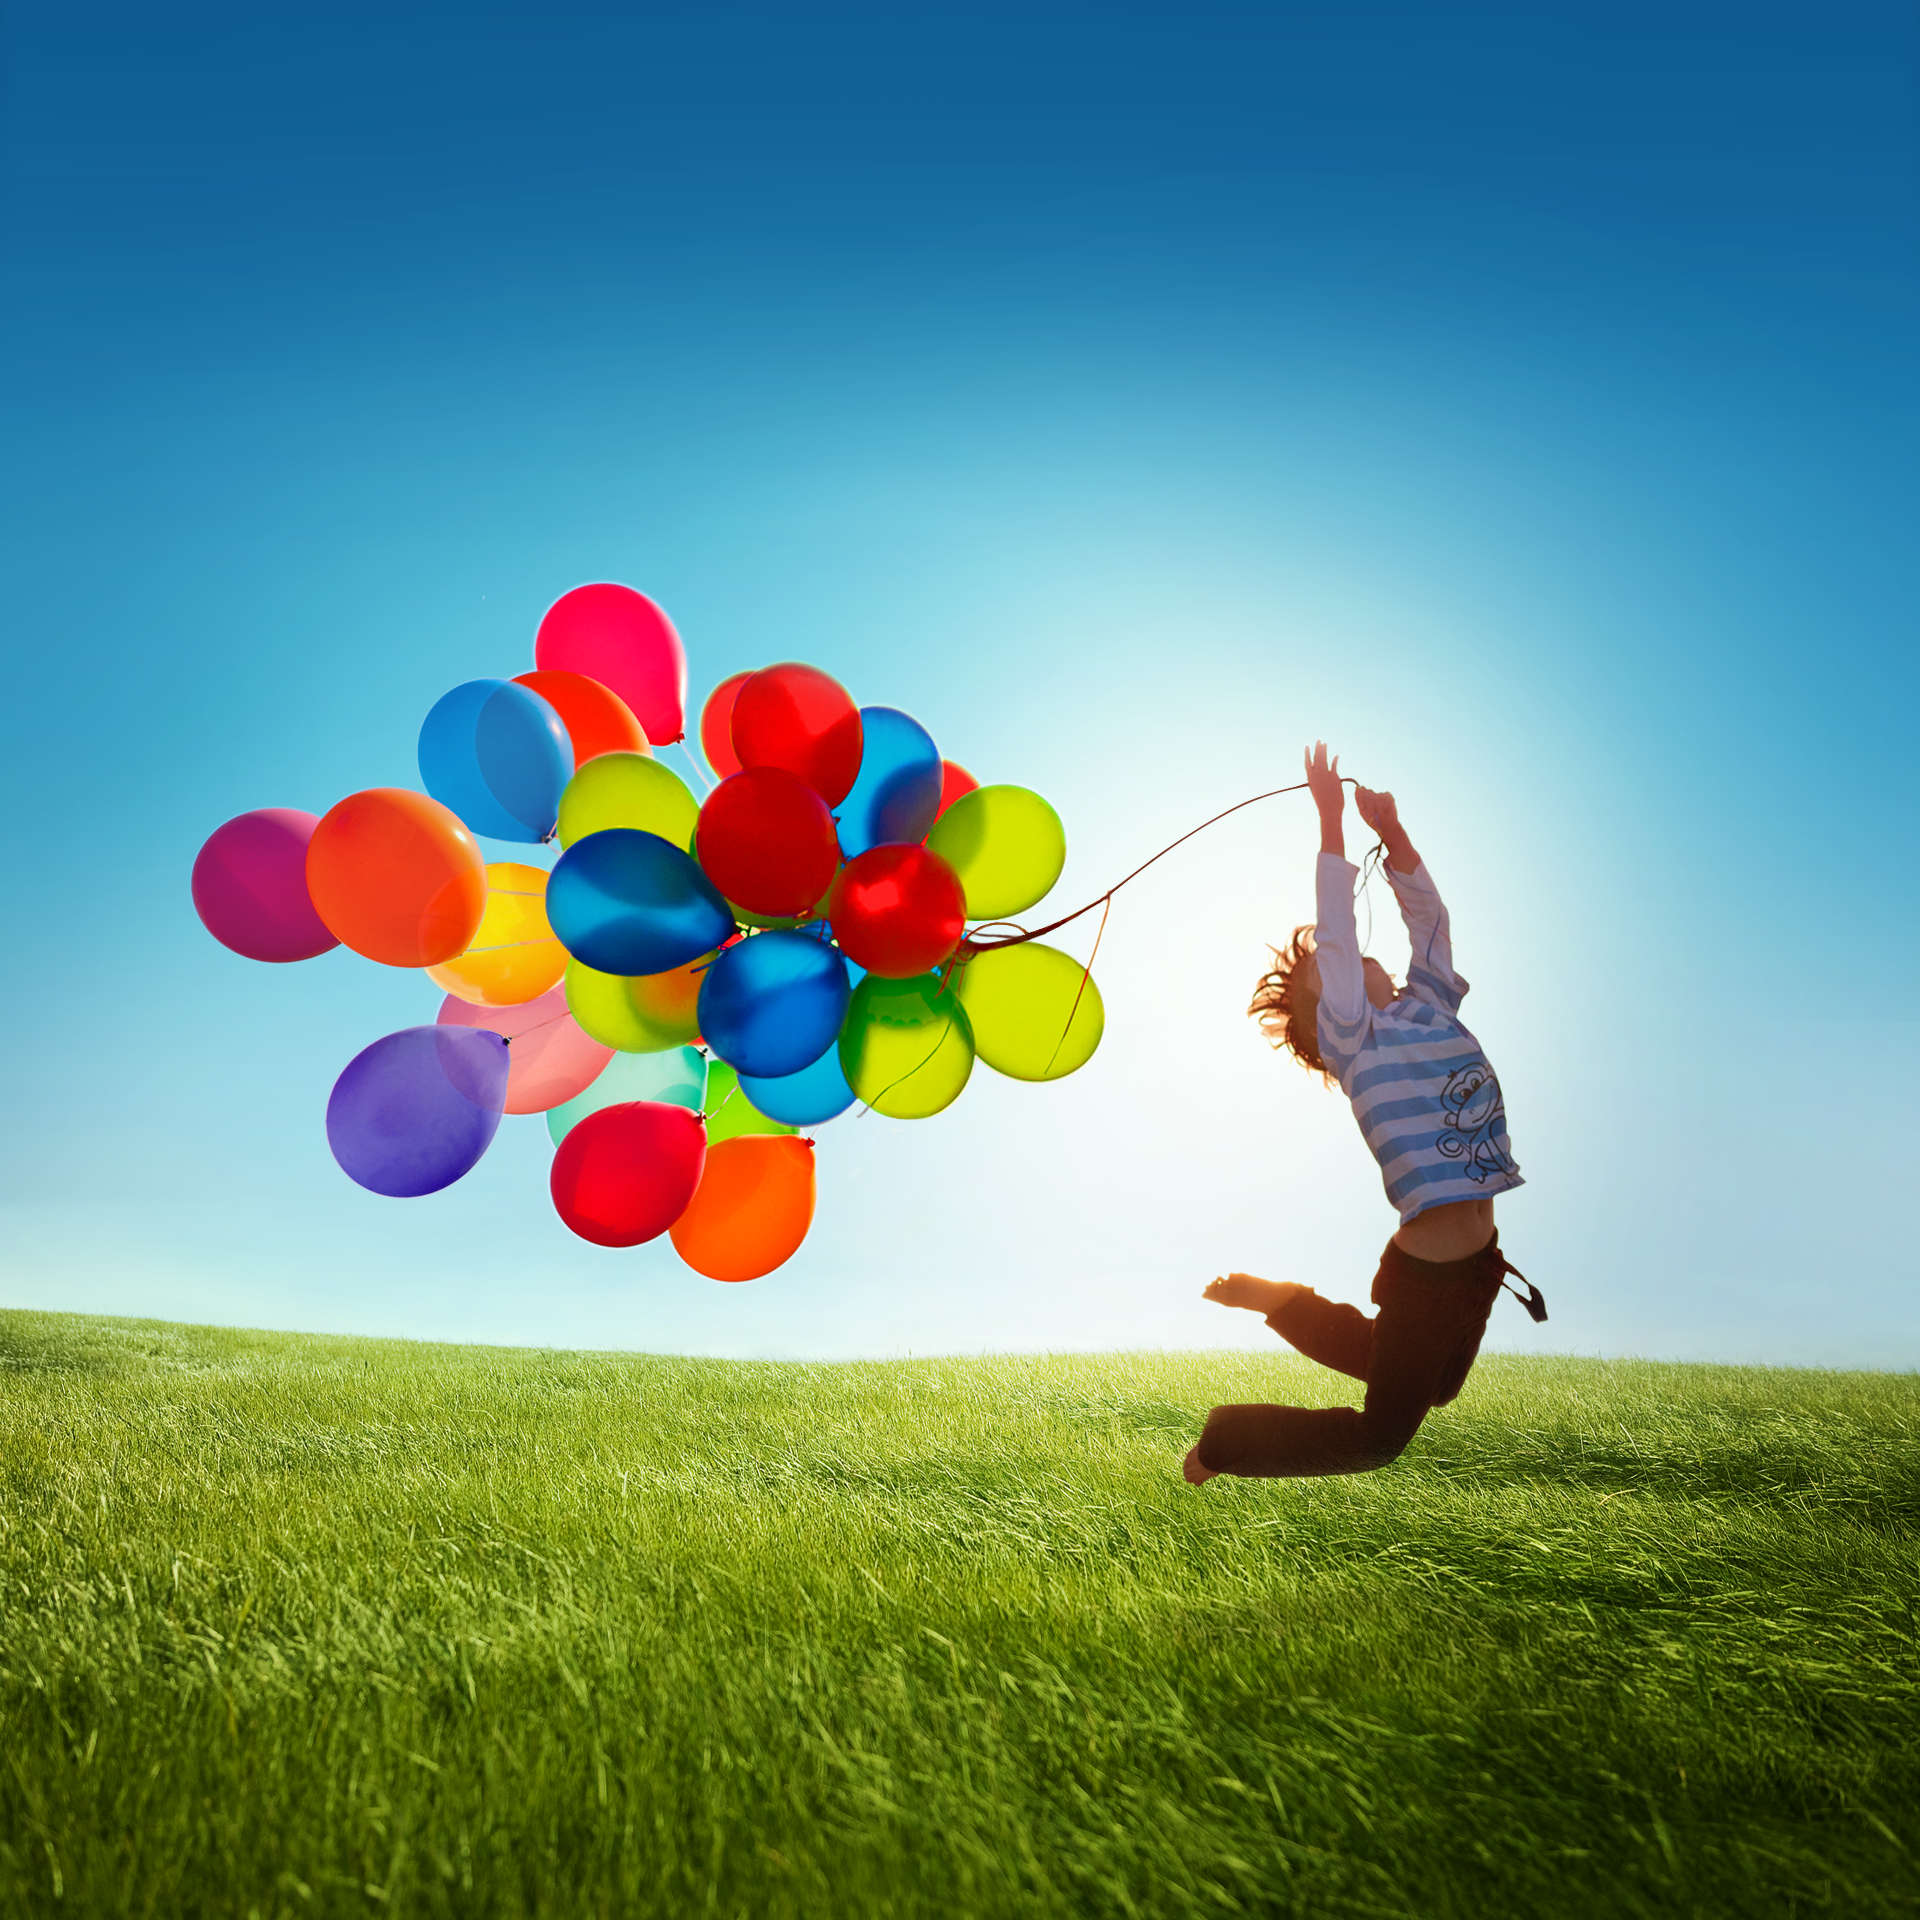 Samsung Galaxy S4s Full HD Wallpapers are now available for 1920x1920